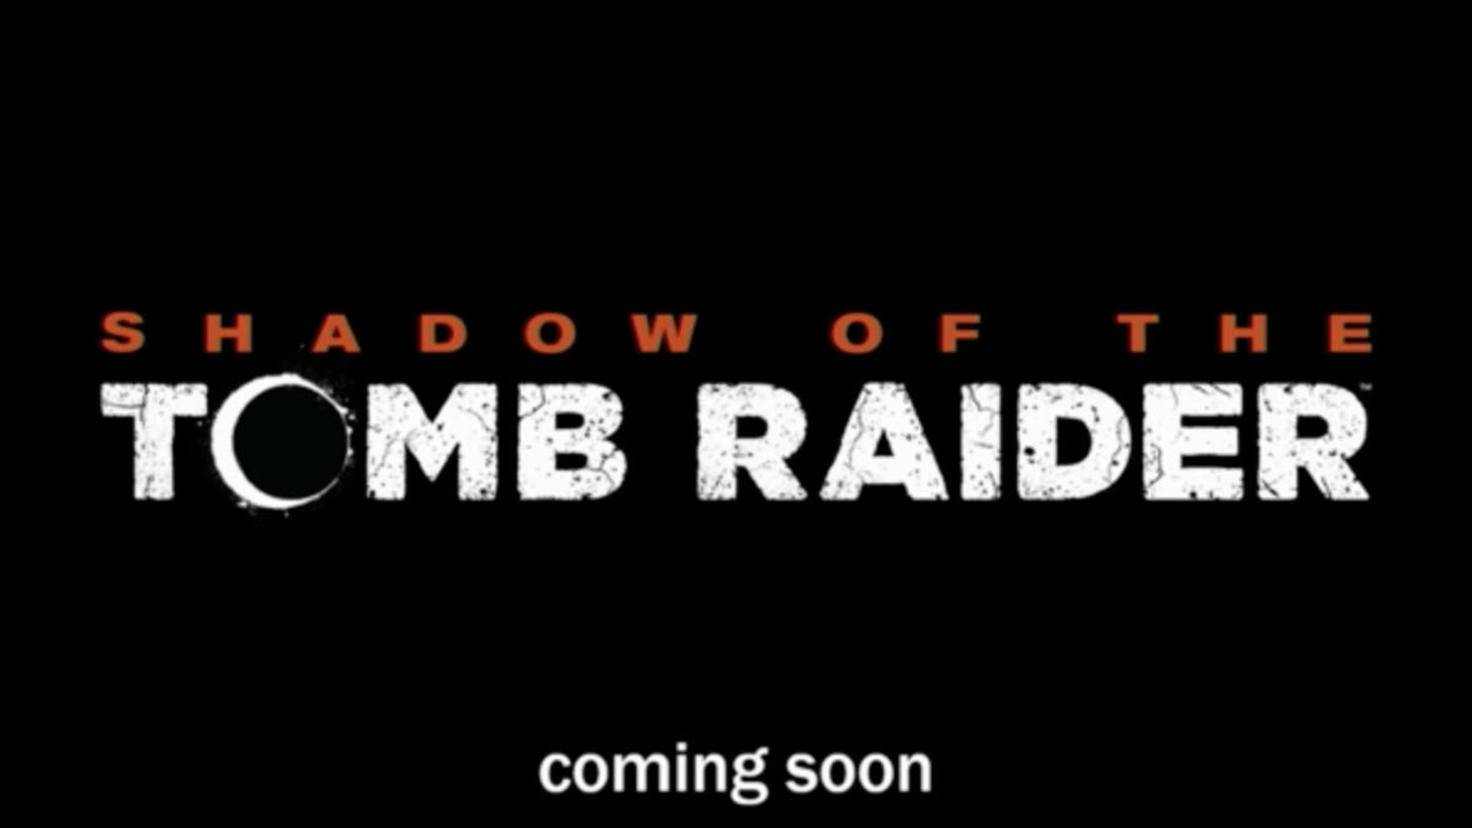 Shadow of the Tomb Raider Final Fantasy XV